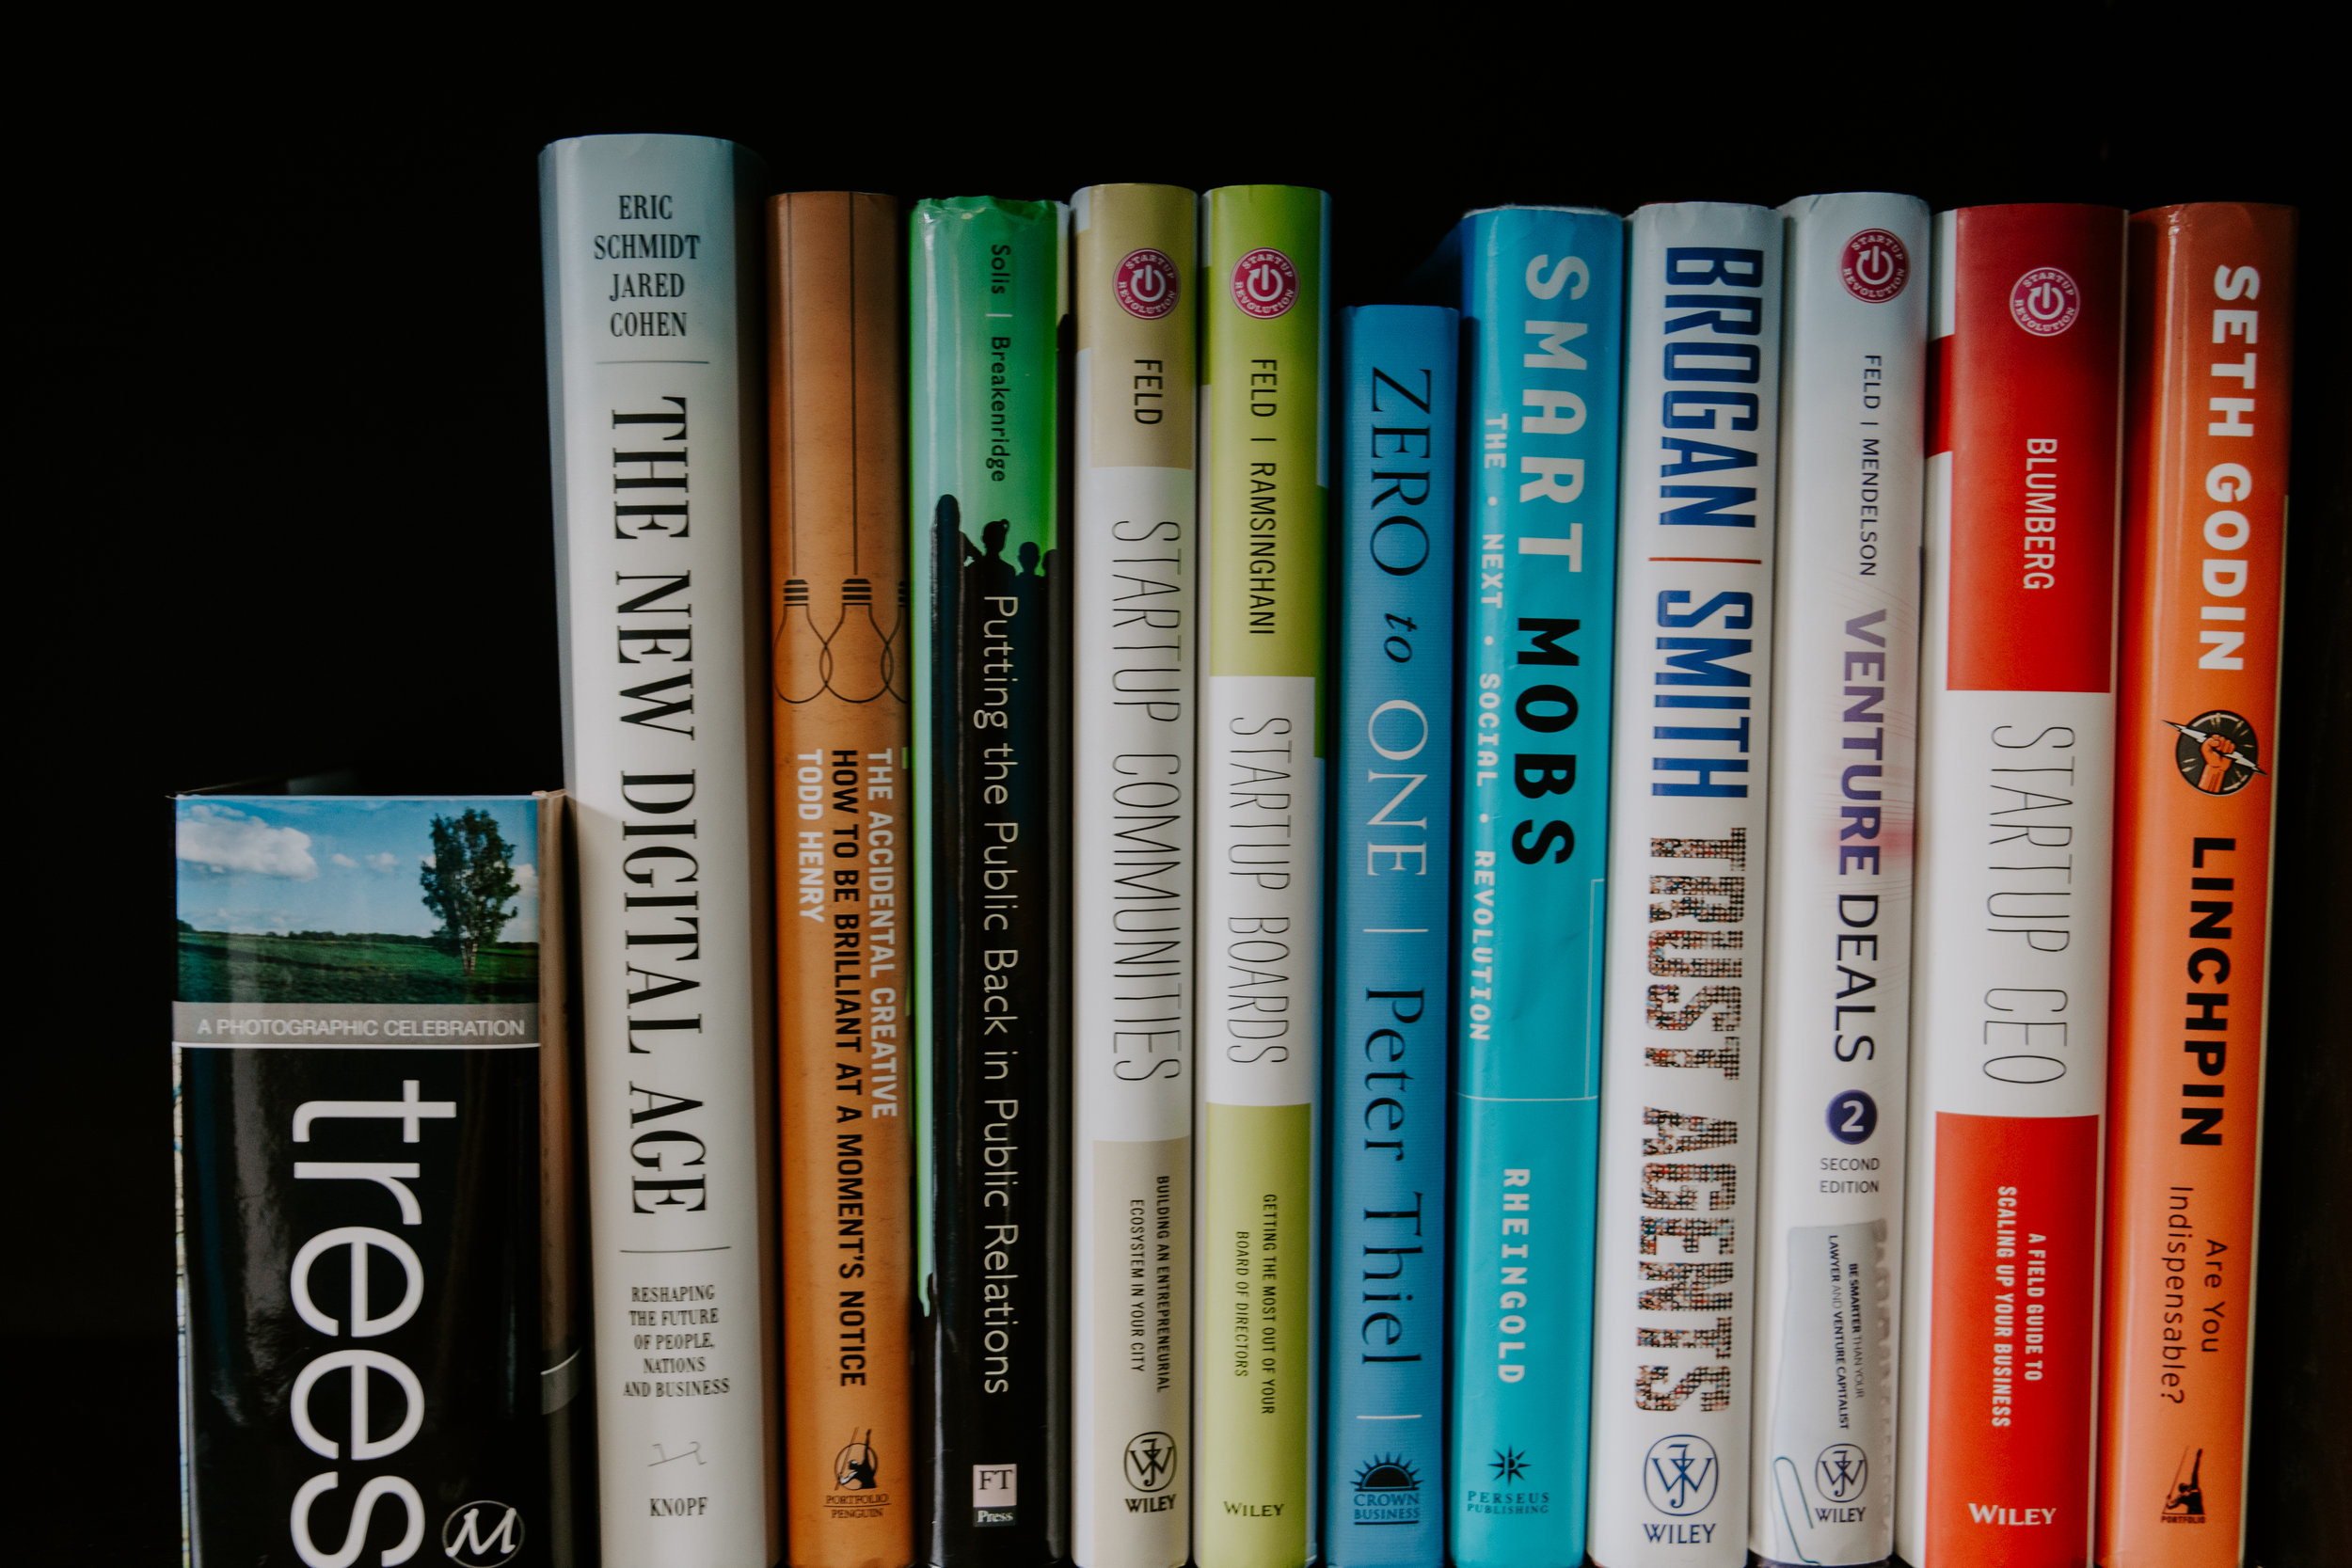 Poetry Marketing - A Writers Business specialises in marketing and promoting poetry books and leverages its Writers Business community for maximum impact. Whether you need help with your poetry book launch or want to increase sales for an already published poetry collection, we will develop a bespoke marketing strategy for you to connect you with potential readers.A typical marketing strategy might include:Social Media MarketingEmail List Building and Lead MagnetsPaid advertisementsKeyword research and SEOSubmission to other book promotion websitesPublic Relations and Author InterviewsCreation of Media Kit and Promo MaterialsPoetry Book Signing & Award SubmissionPoetry Awards and Contests